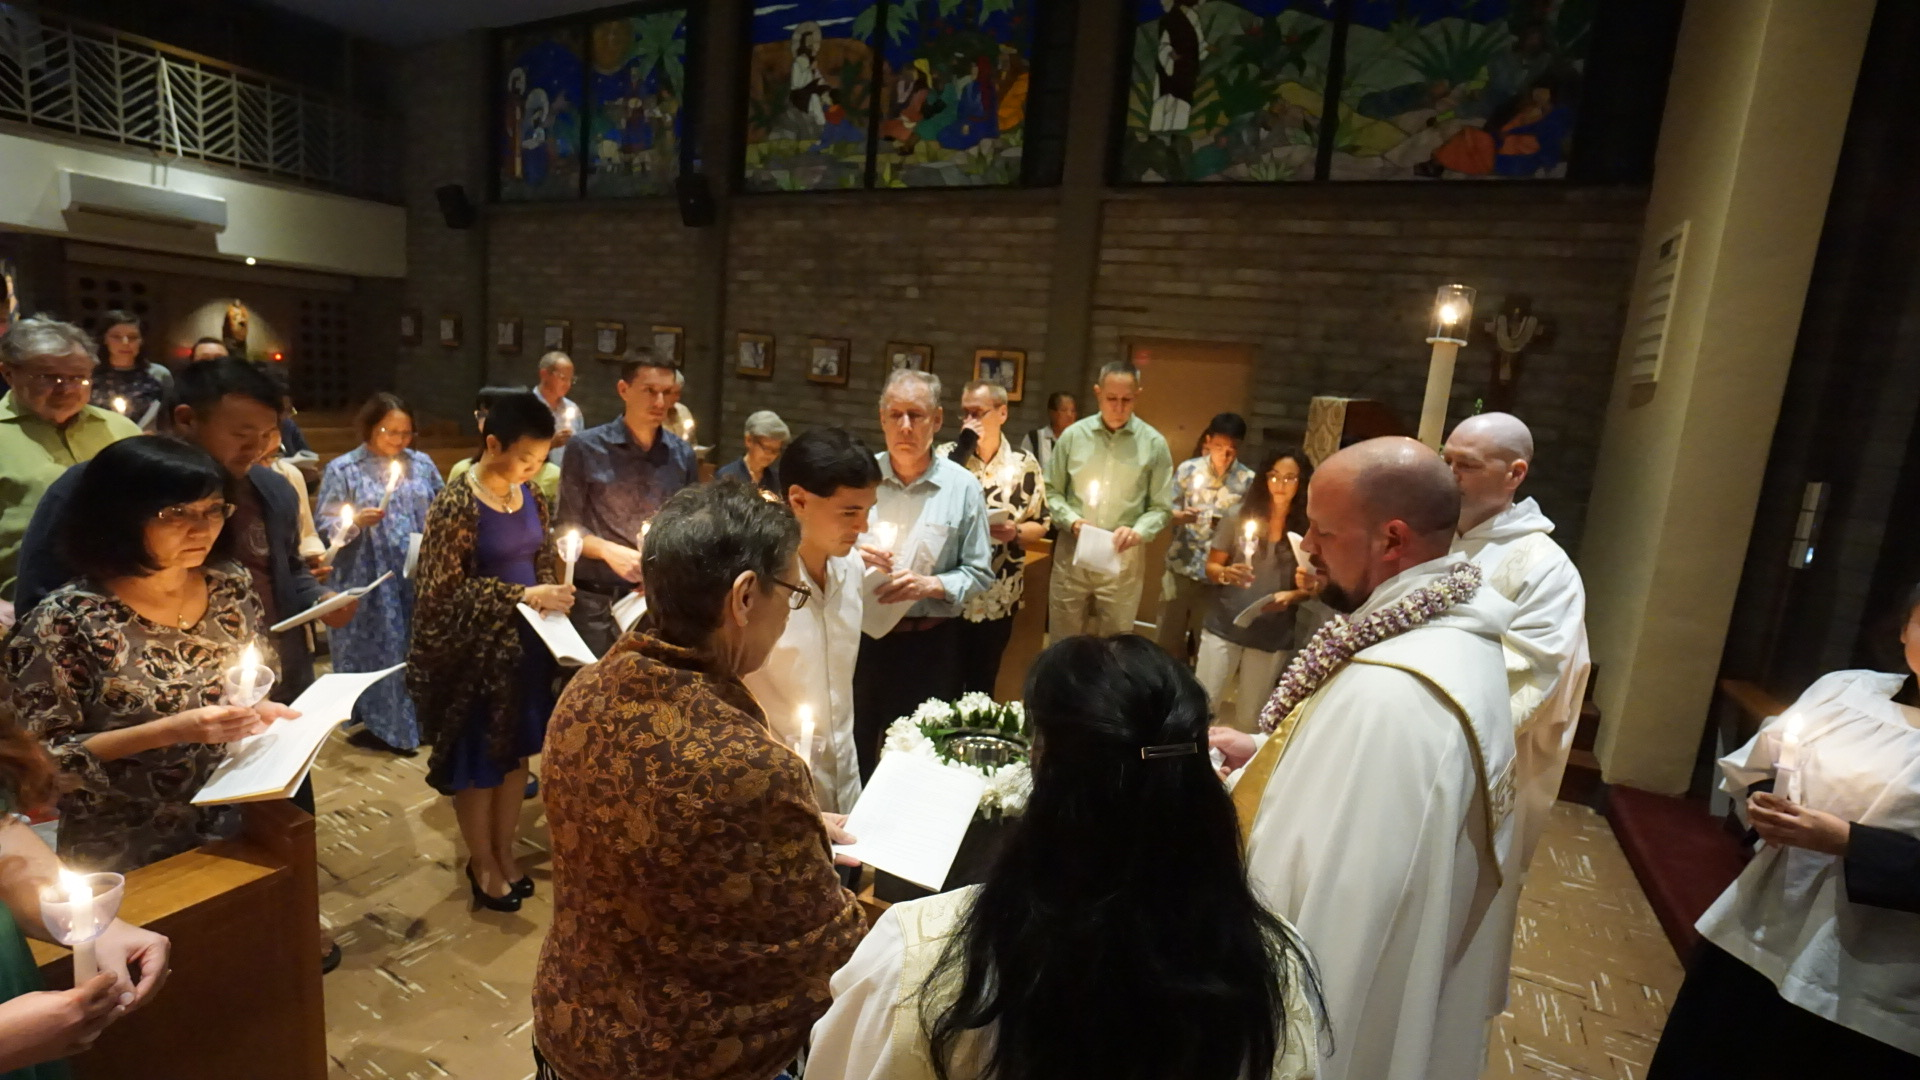 The Sacrament of Holy Baptism at the Easter Vigil